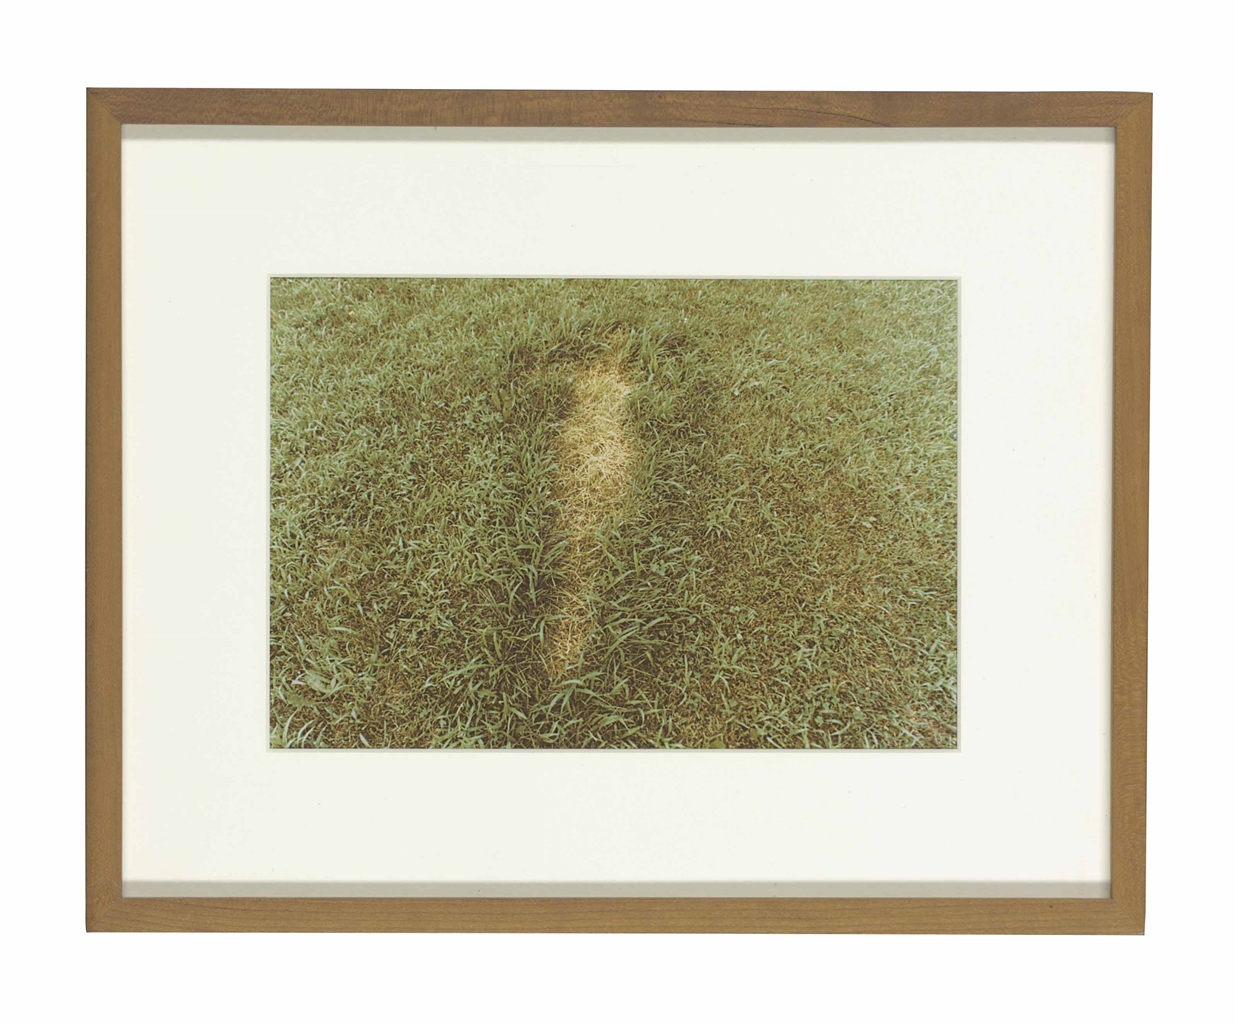 Ana Mendieta-Untitled, from Silueta Series, Iowa-1978